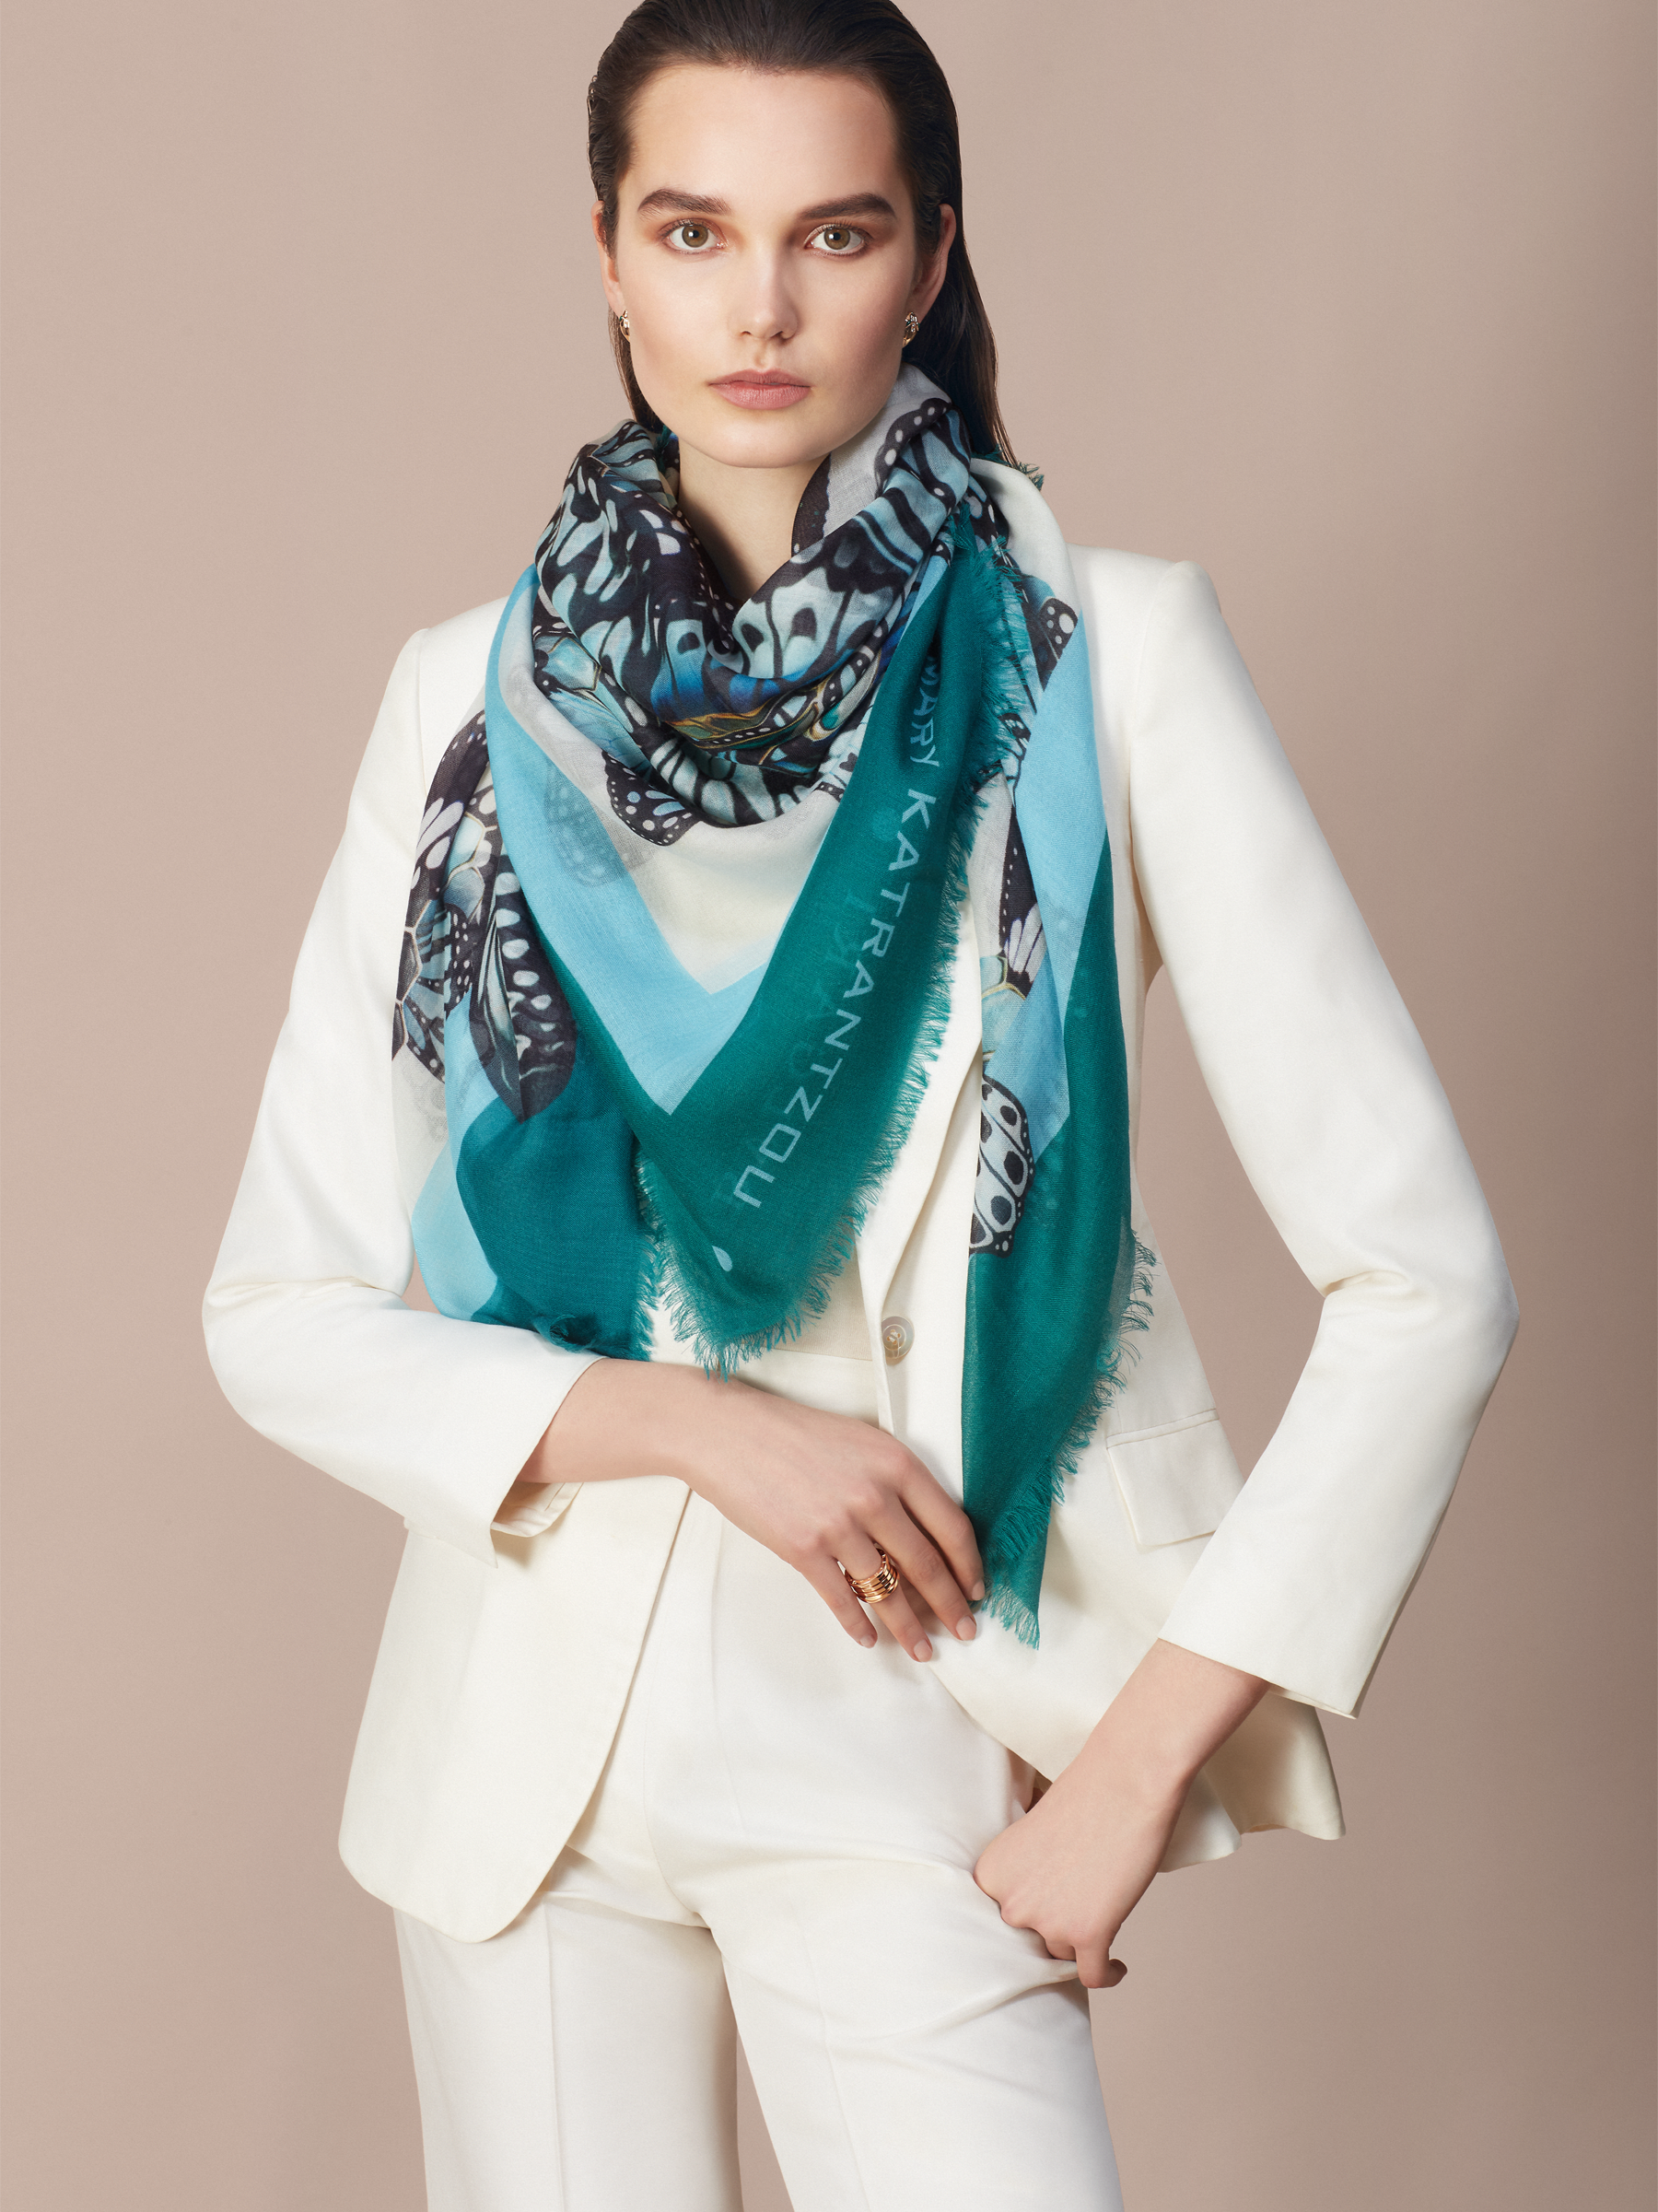 "Emerald green ""Mary Katrantzou x Bvlgari"" scarf in fine, printed light cashmere. Special Edition. MK-140Scarf image 2"